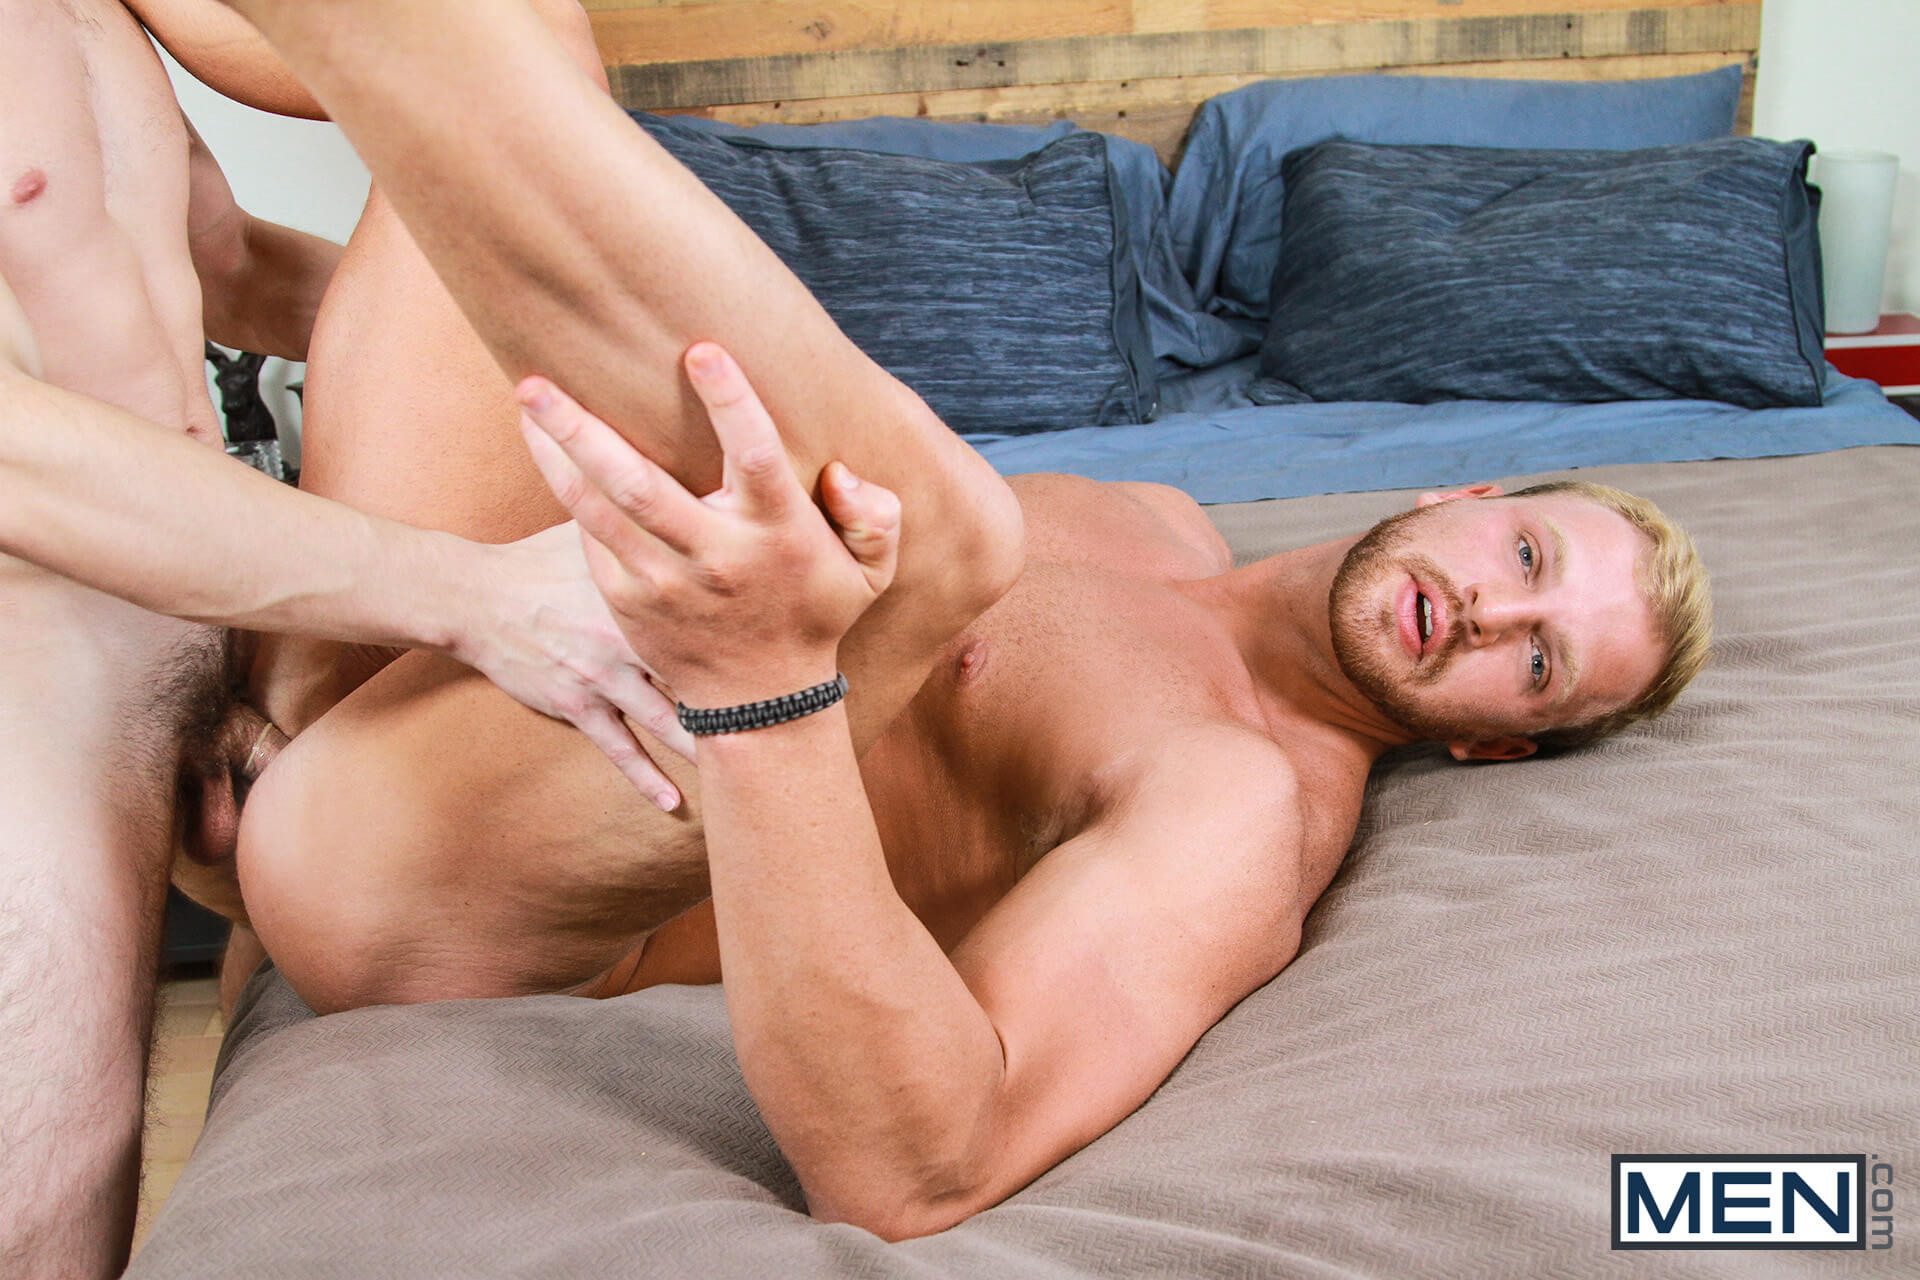 men drill my hole trainer confessions part 2 josh peters will braun gay porn blog image 20